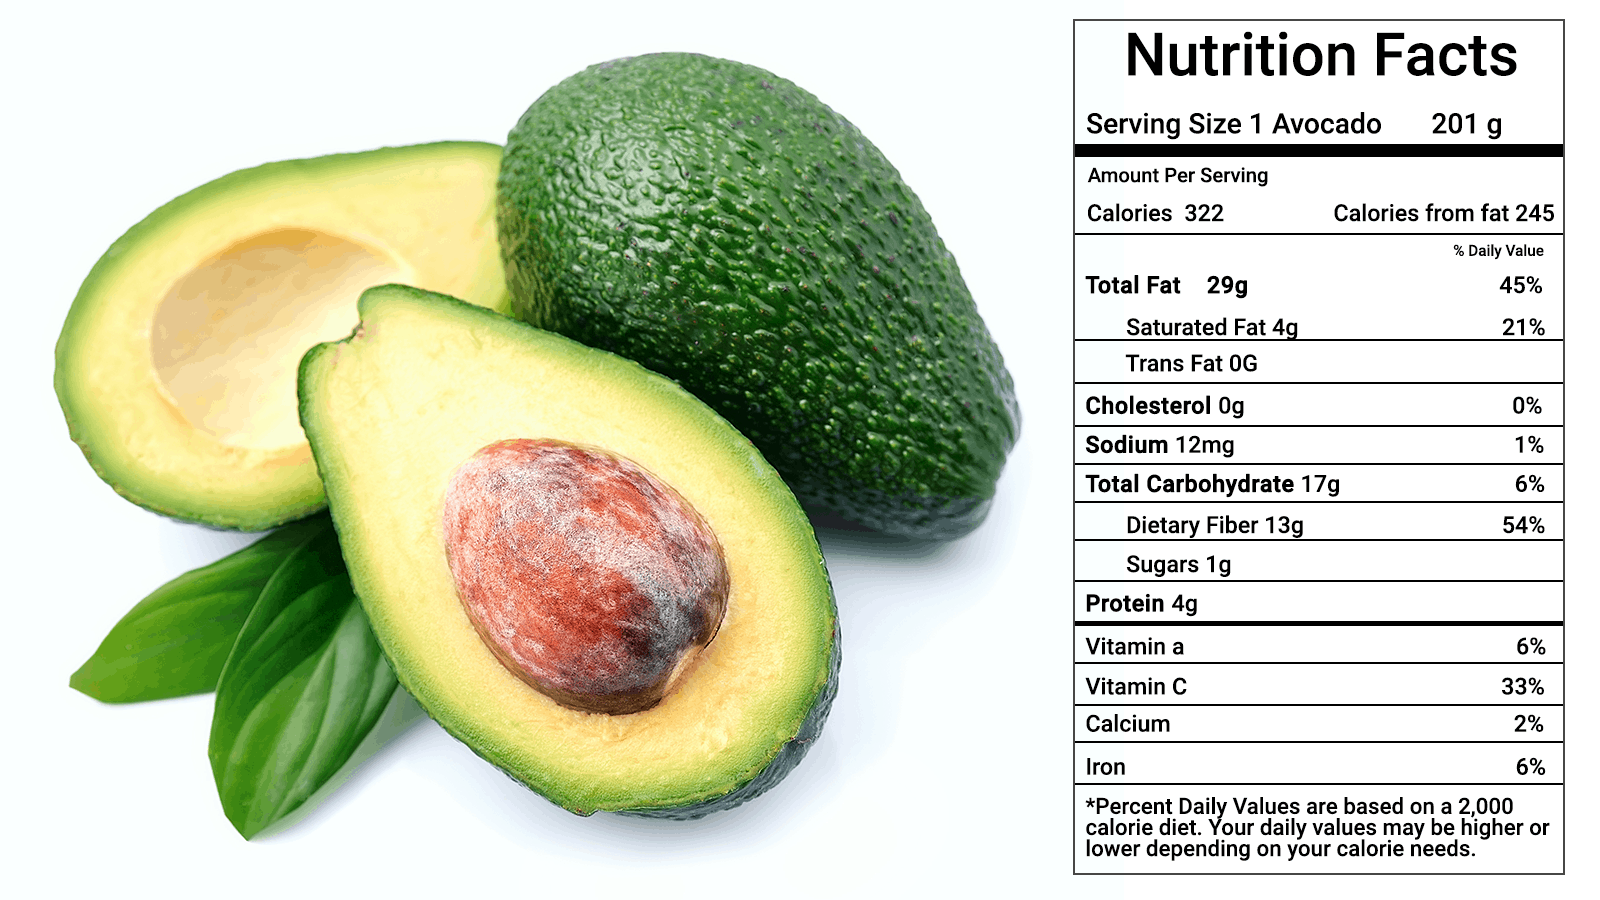 10 avocado nutrition facts (most people don't know about)